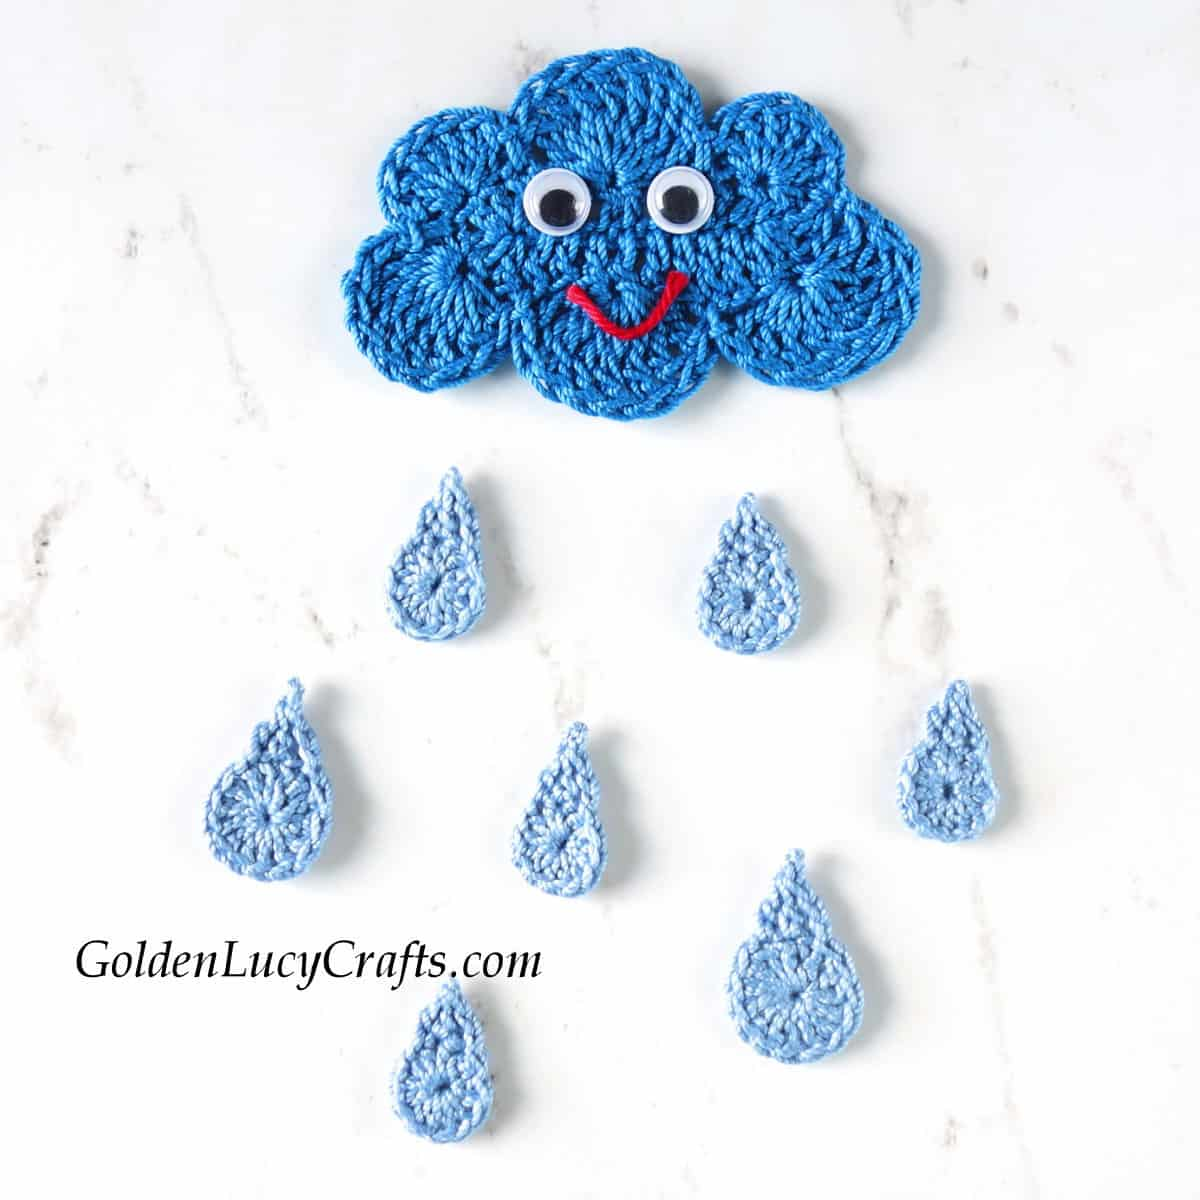 Crocheted cloud with googly eyes and smile, raindrops applique.